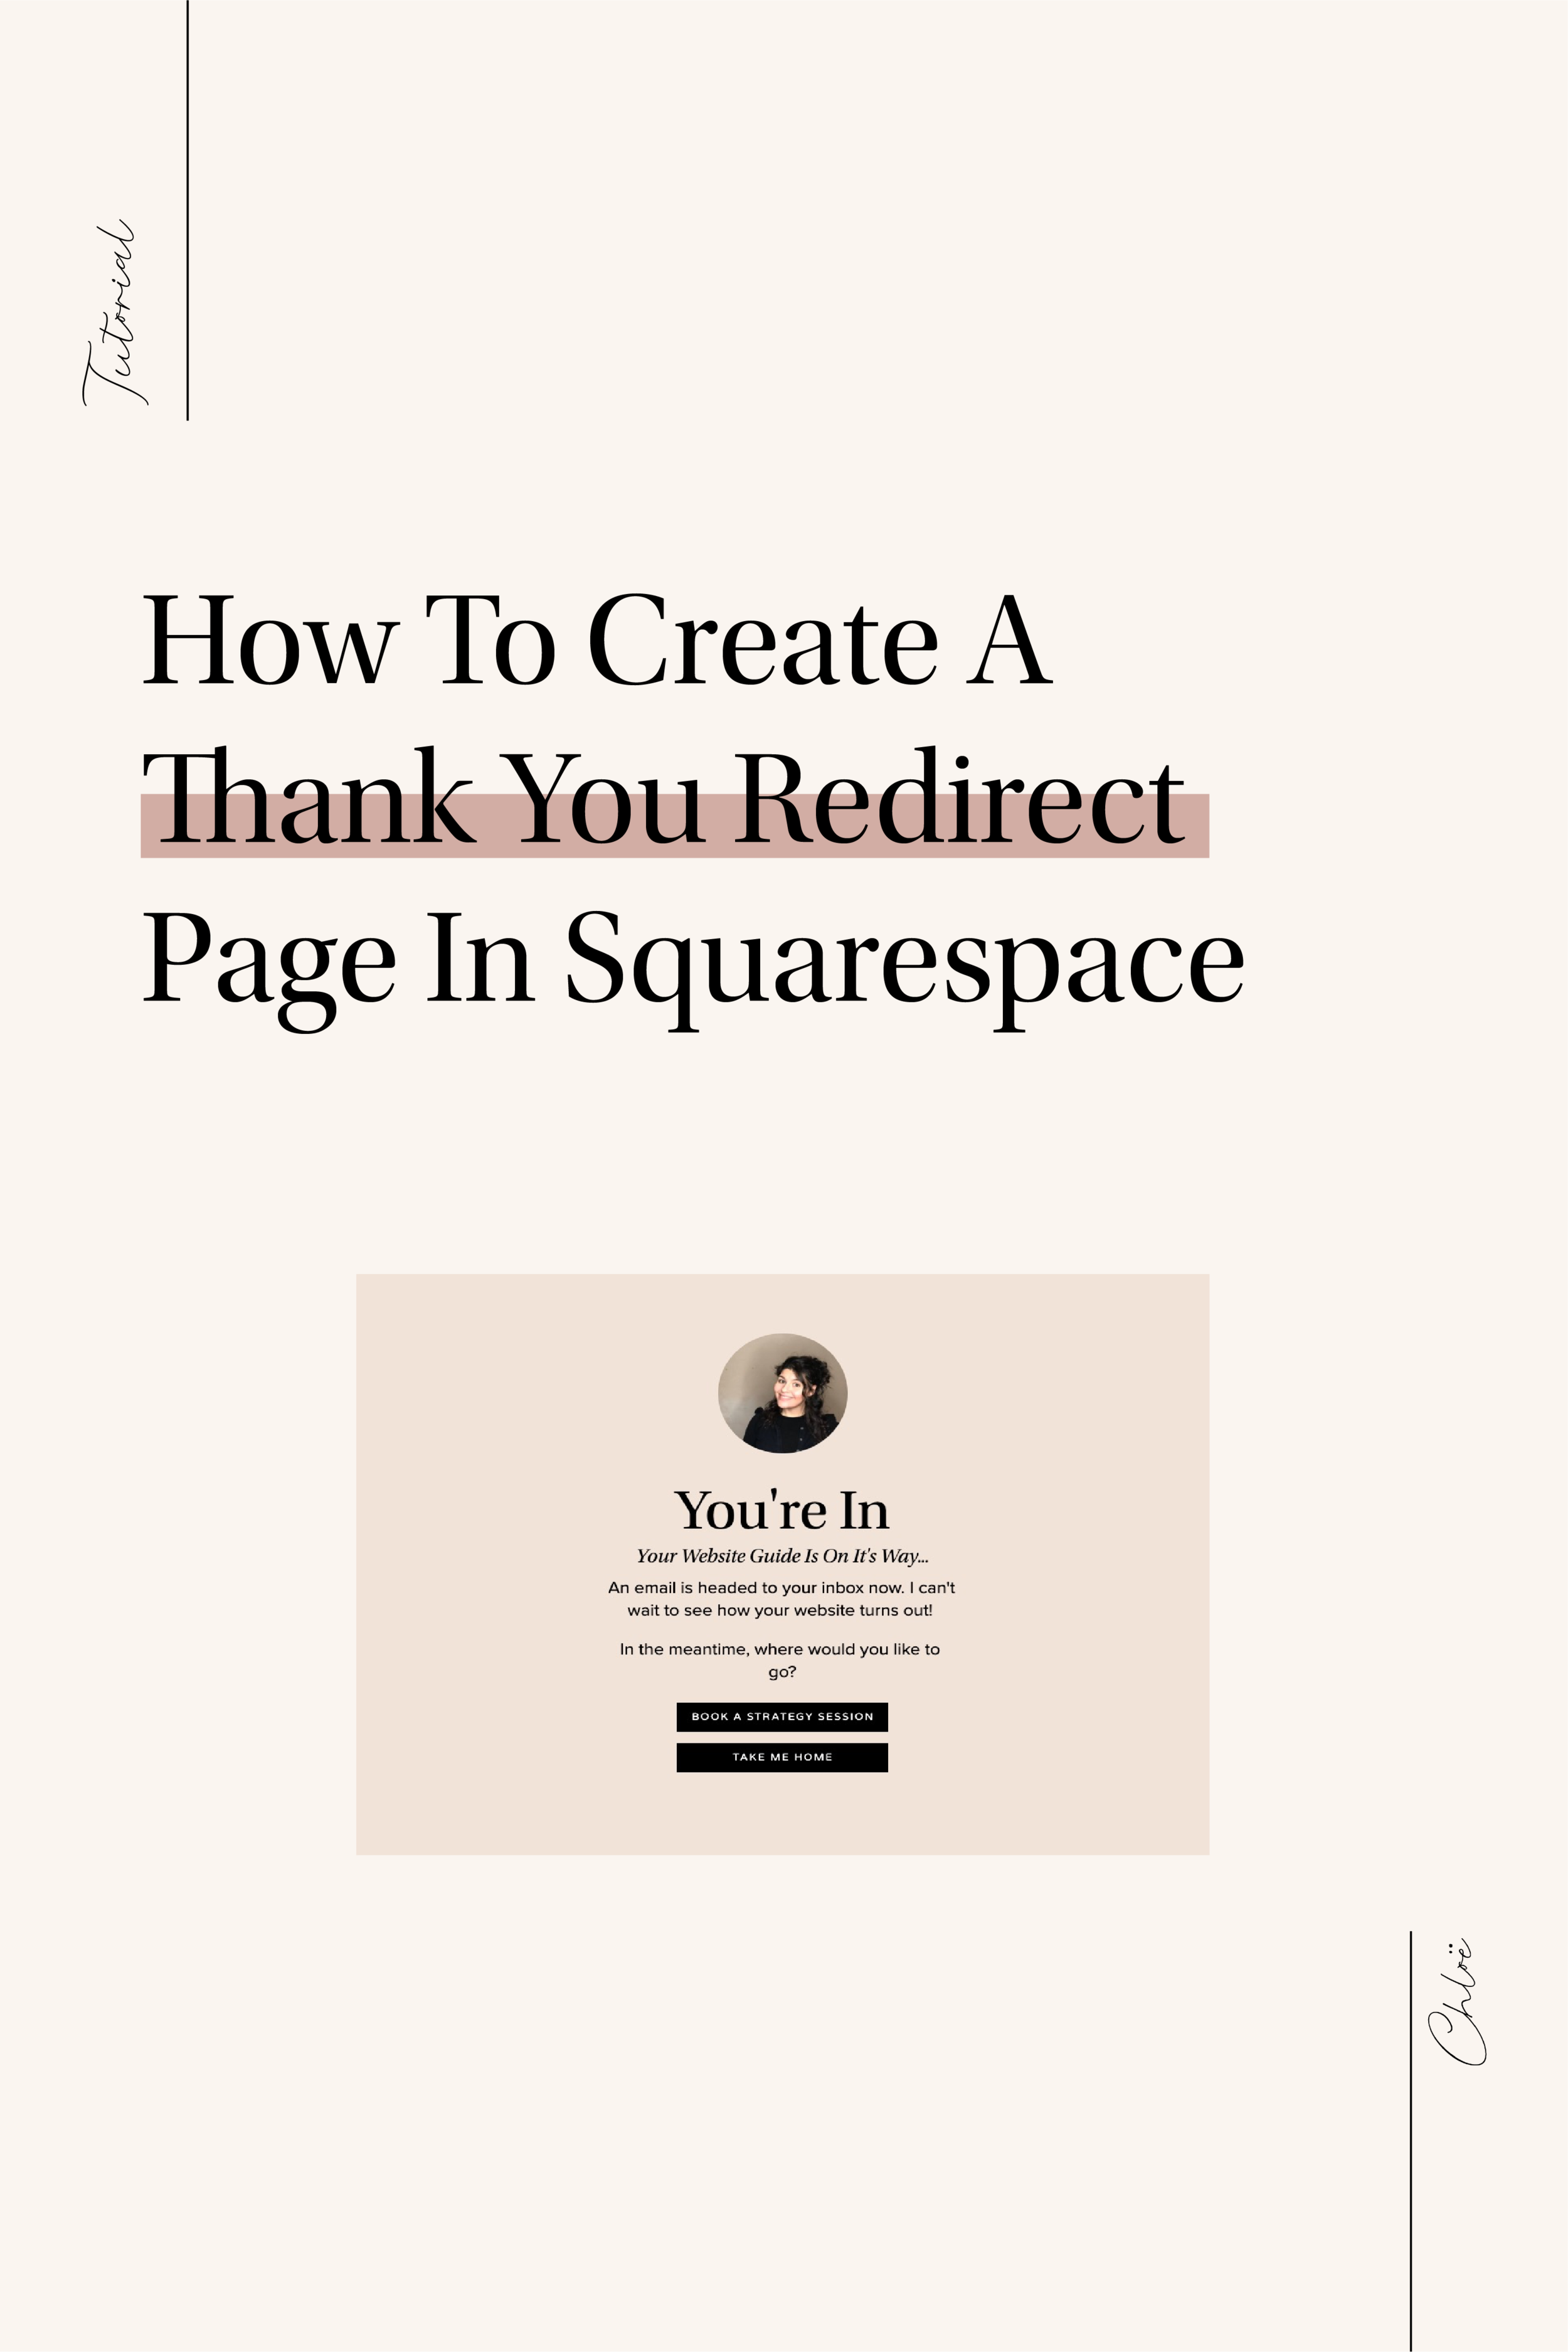 How To Create A Thank You Redirect In Squarespace 3.png